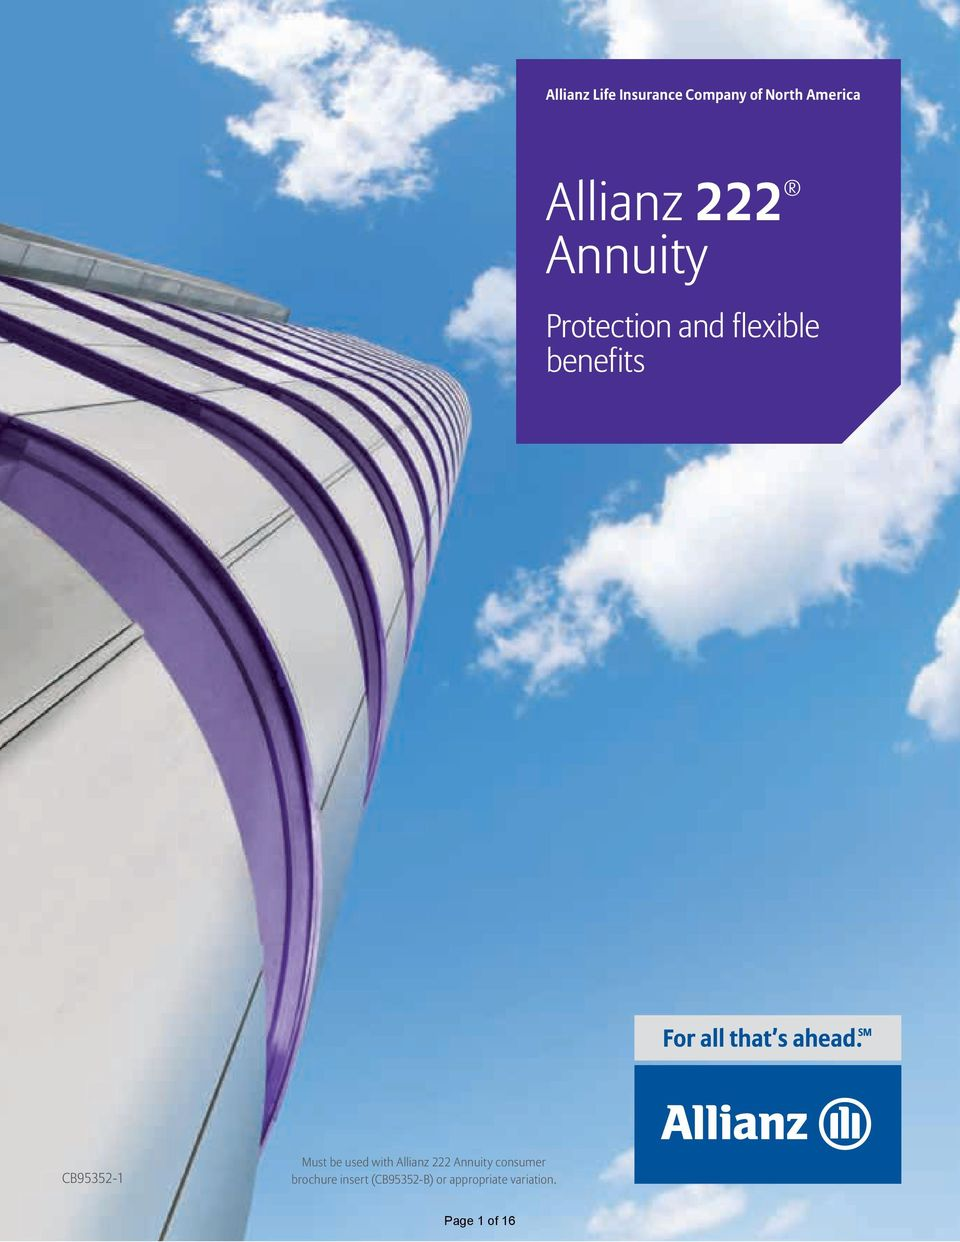 Must be used with Allianz 222 Annuity consumer brochure